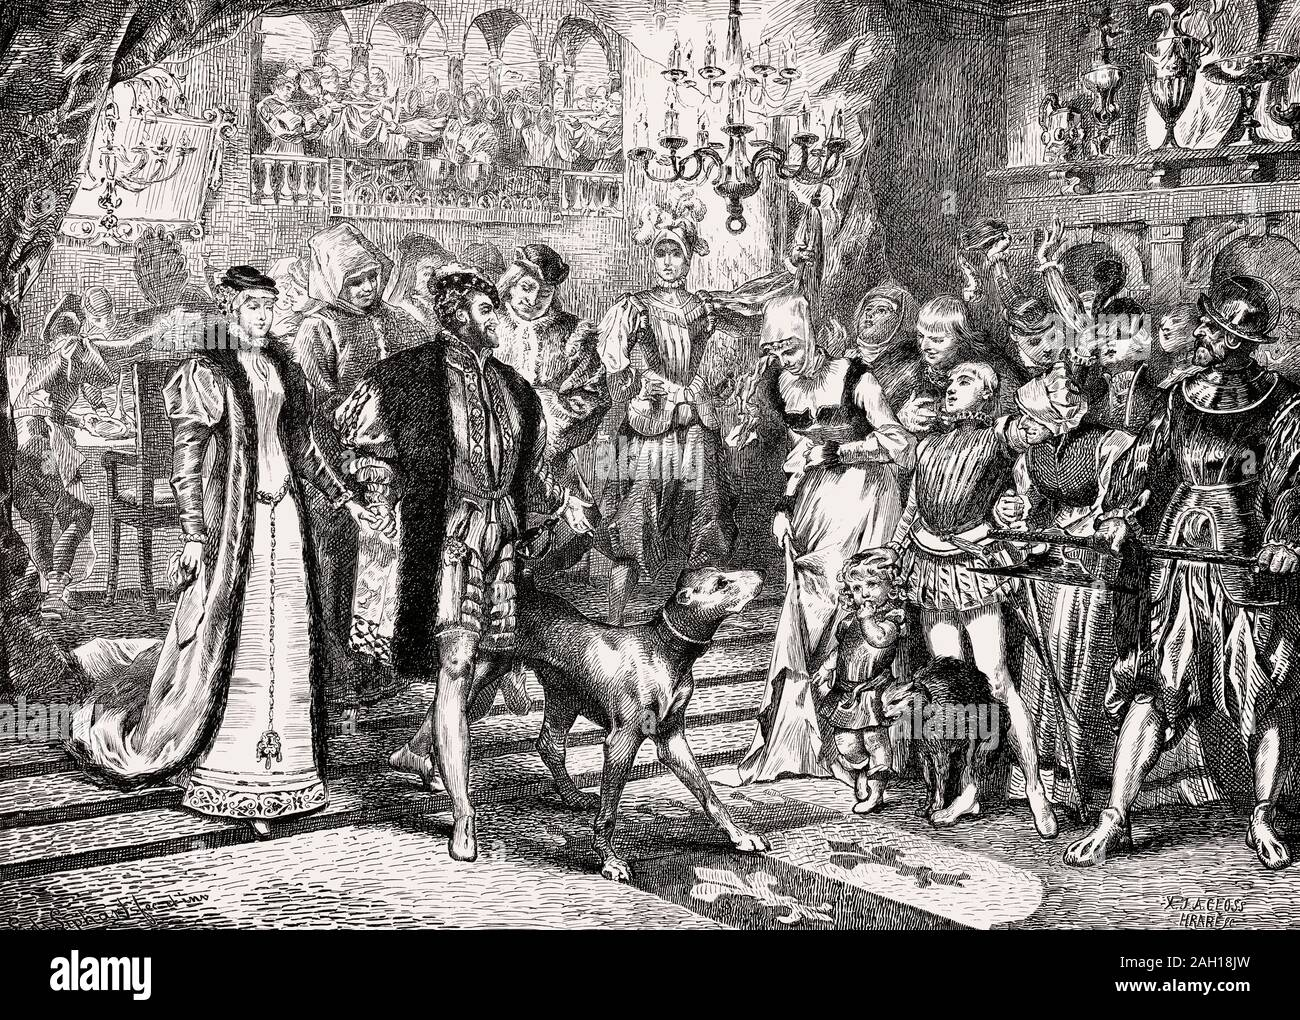 Emperor Charles V at the Fuggers' House, Augsburg 1535 Stock Photo